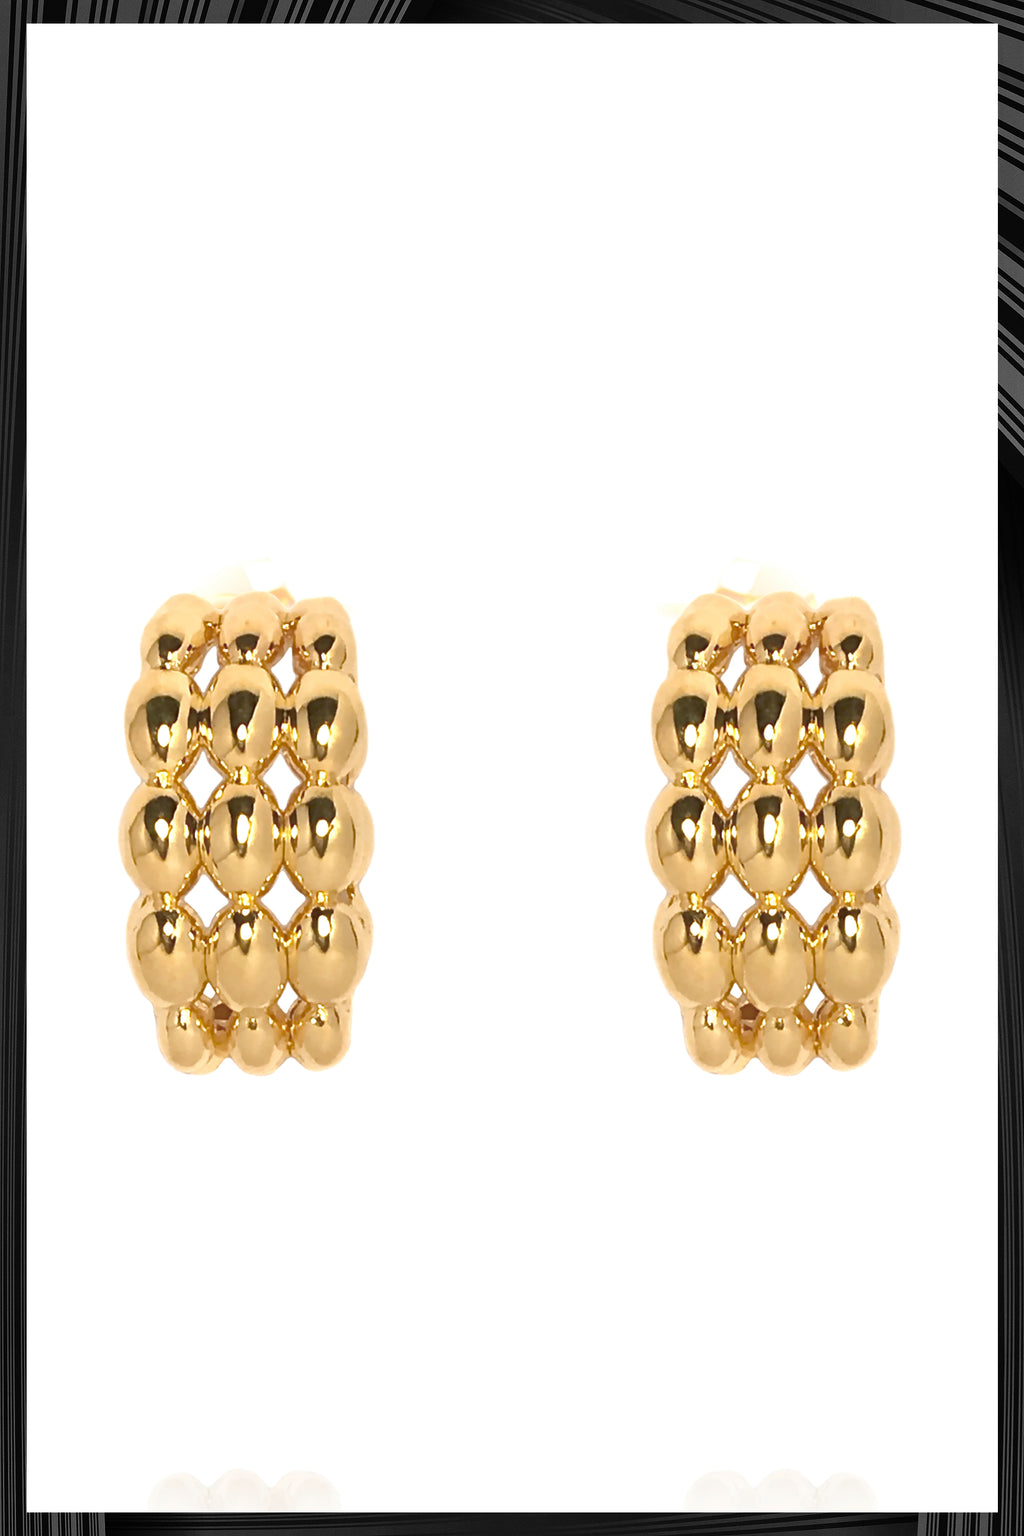 Dew Earrings | Free Delivery - 2-3 Weeks Shipping